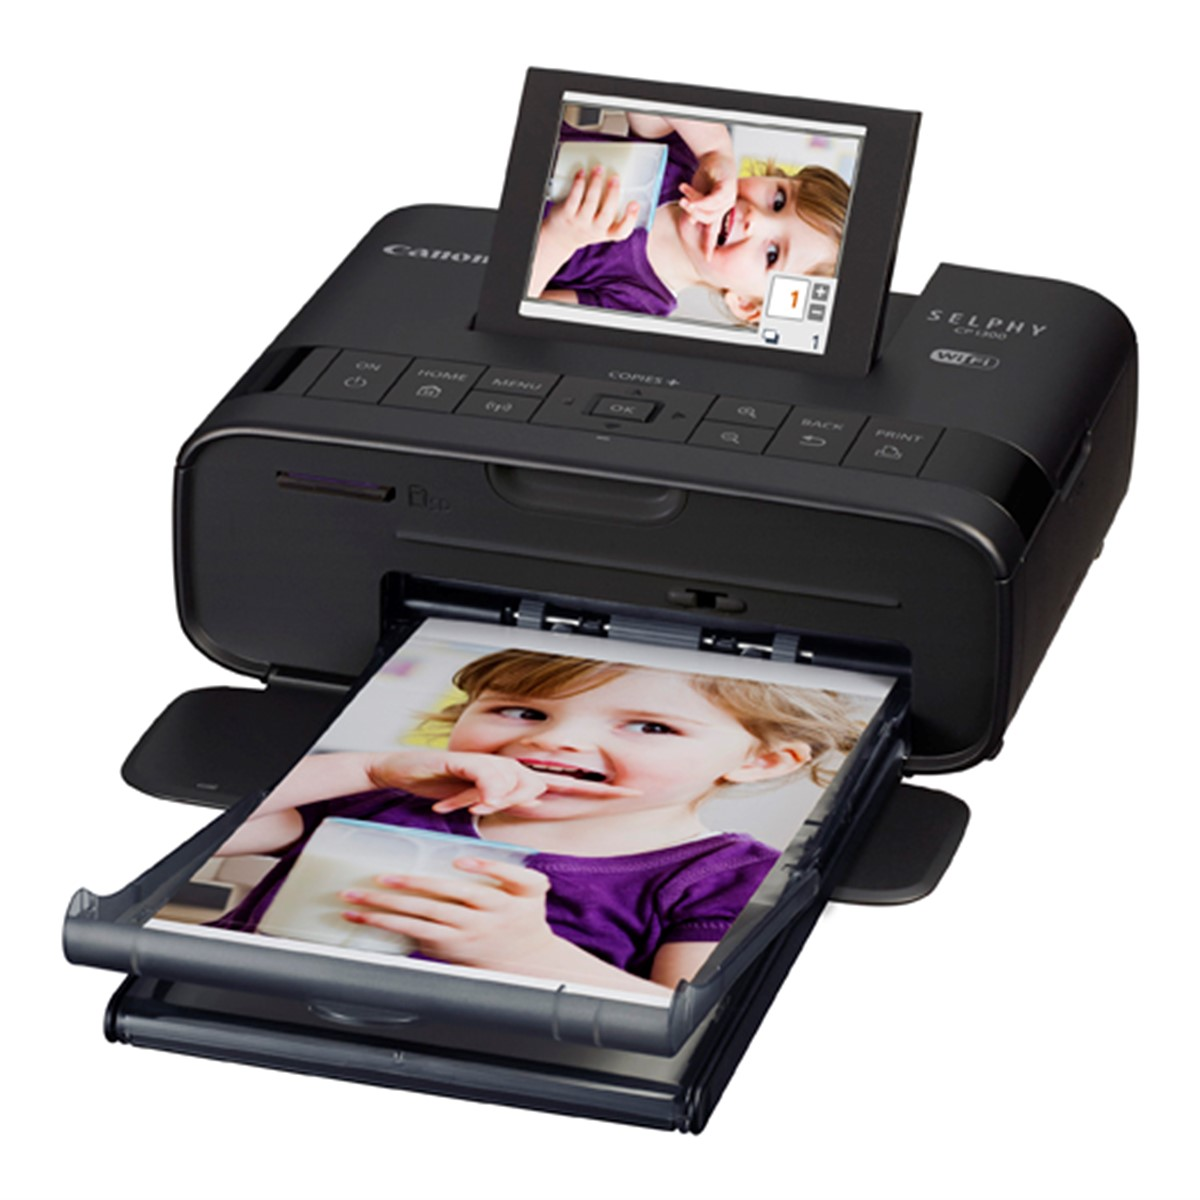 Canon Introduces Selphy Cp1300 Wireless Compact Photo Printer Inkjet Pixma G3010 Print Scan Copy Wifi Digital Photography Review